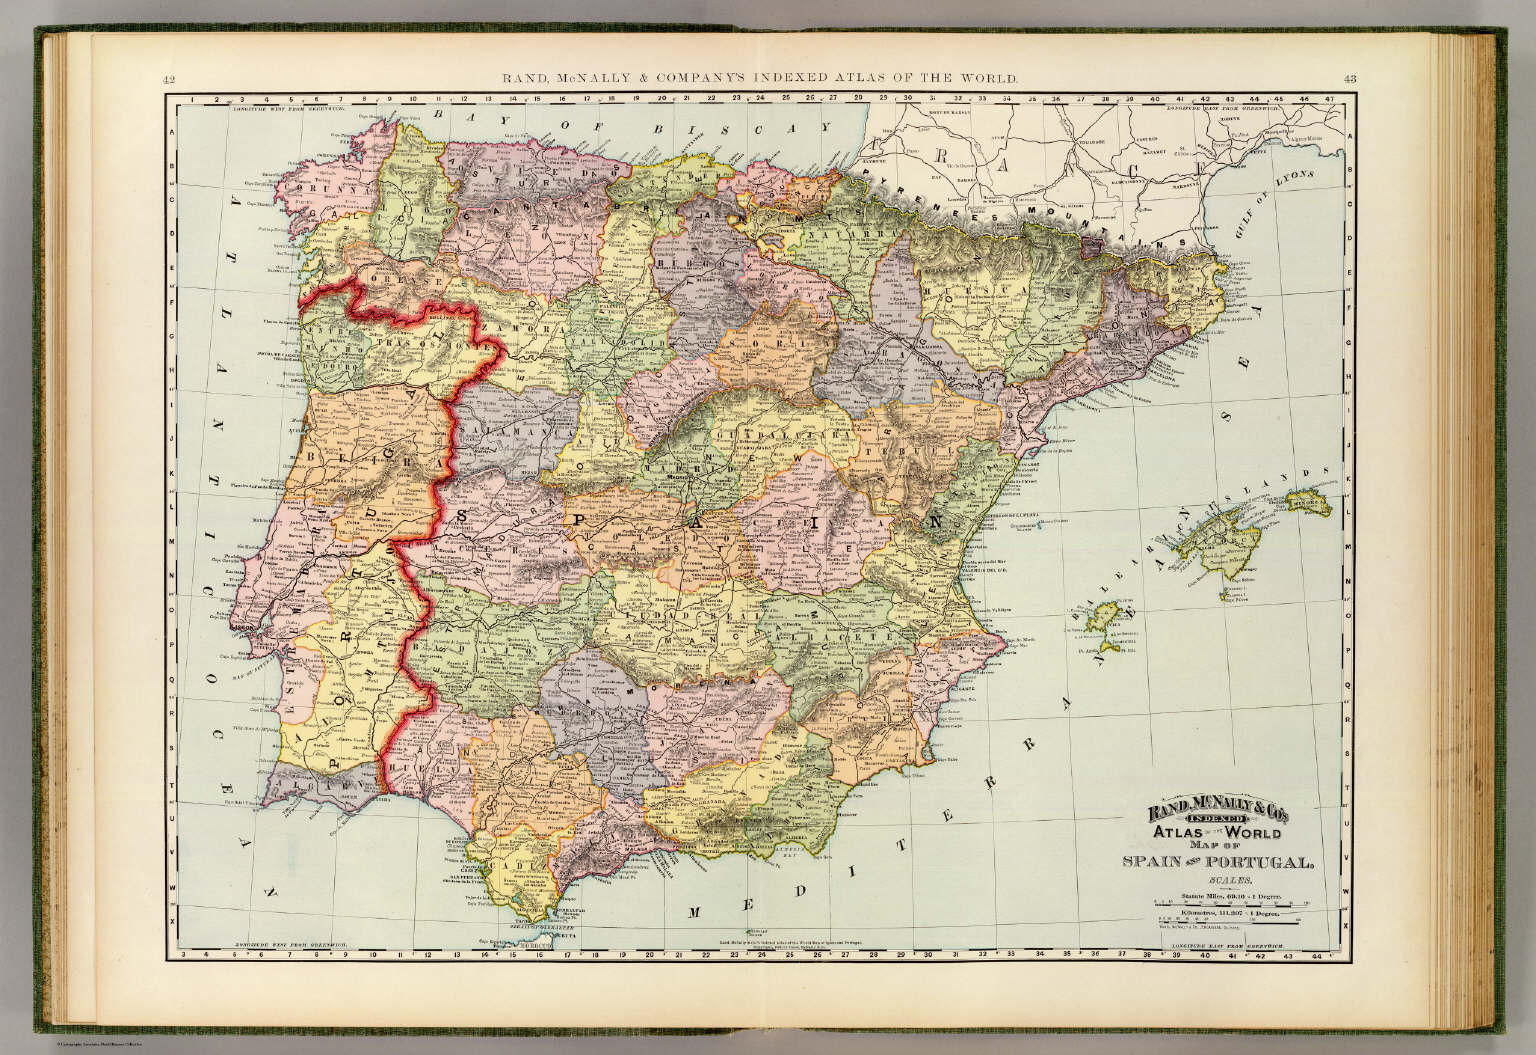 Spain Portugal David Rumsey Historical Map Collection - Spain historical map